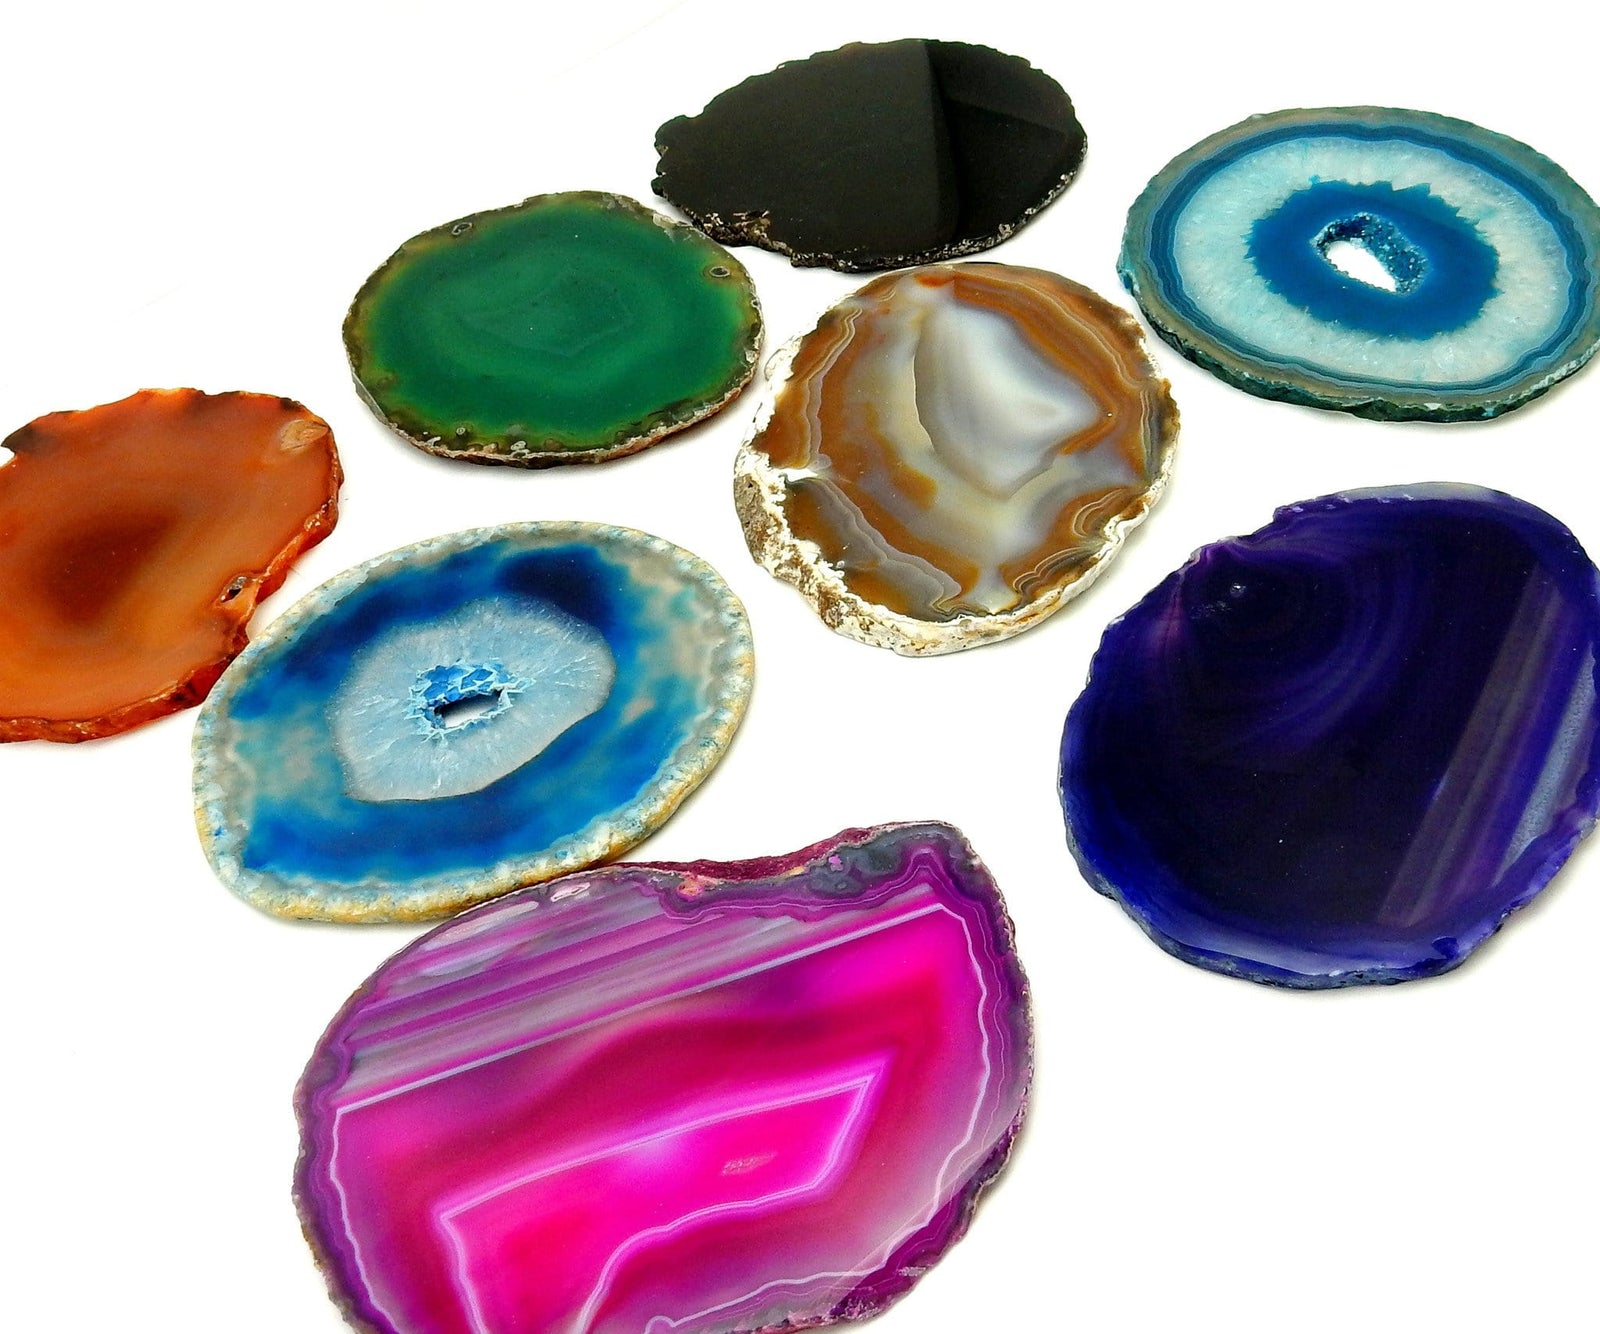 Agate Slices - AGATE SLICE Assorted - Perfect For Gift, Art Projects Supplies - Brazilian Agate - Size #3